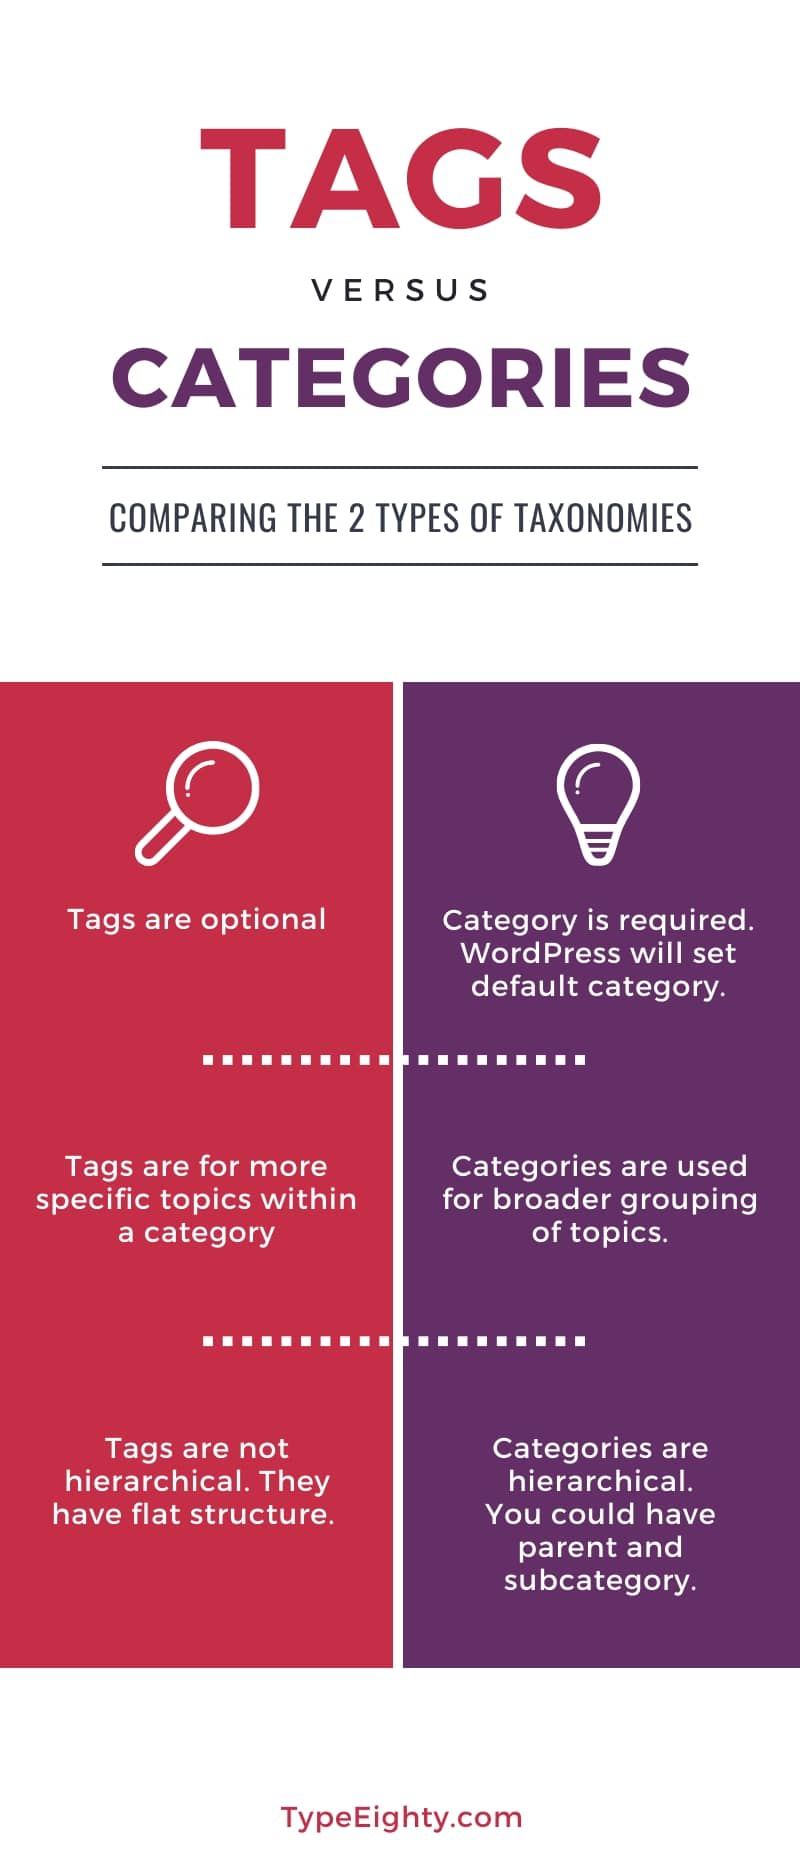 Tags vs Categories